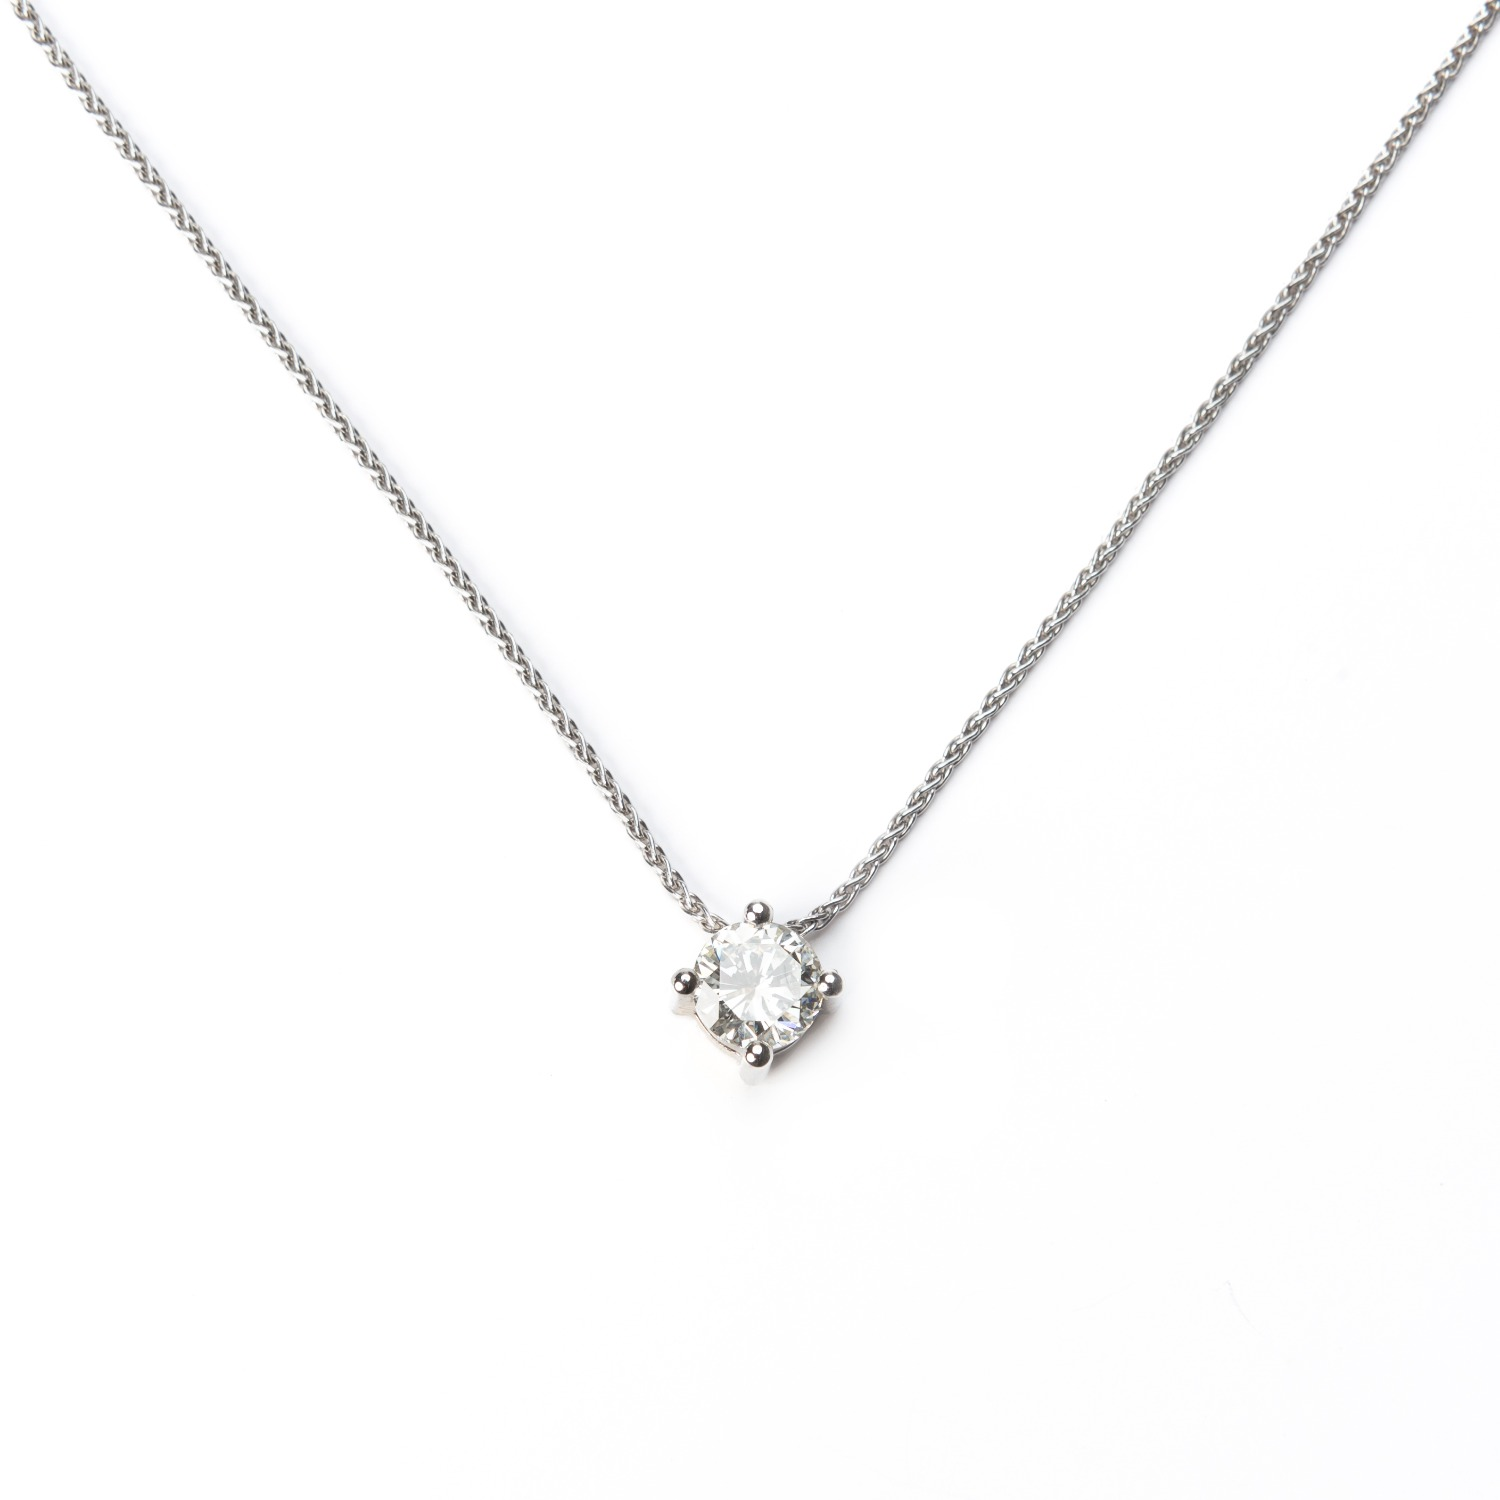 DANCING DIAMOND NECKLACE - MADE ON DEMAND -